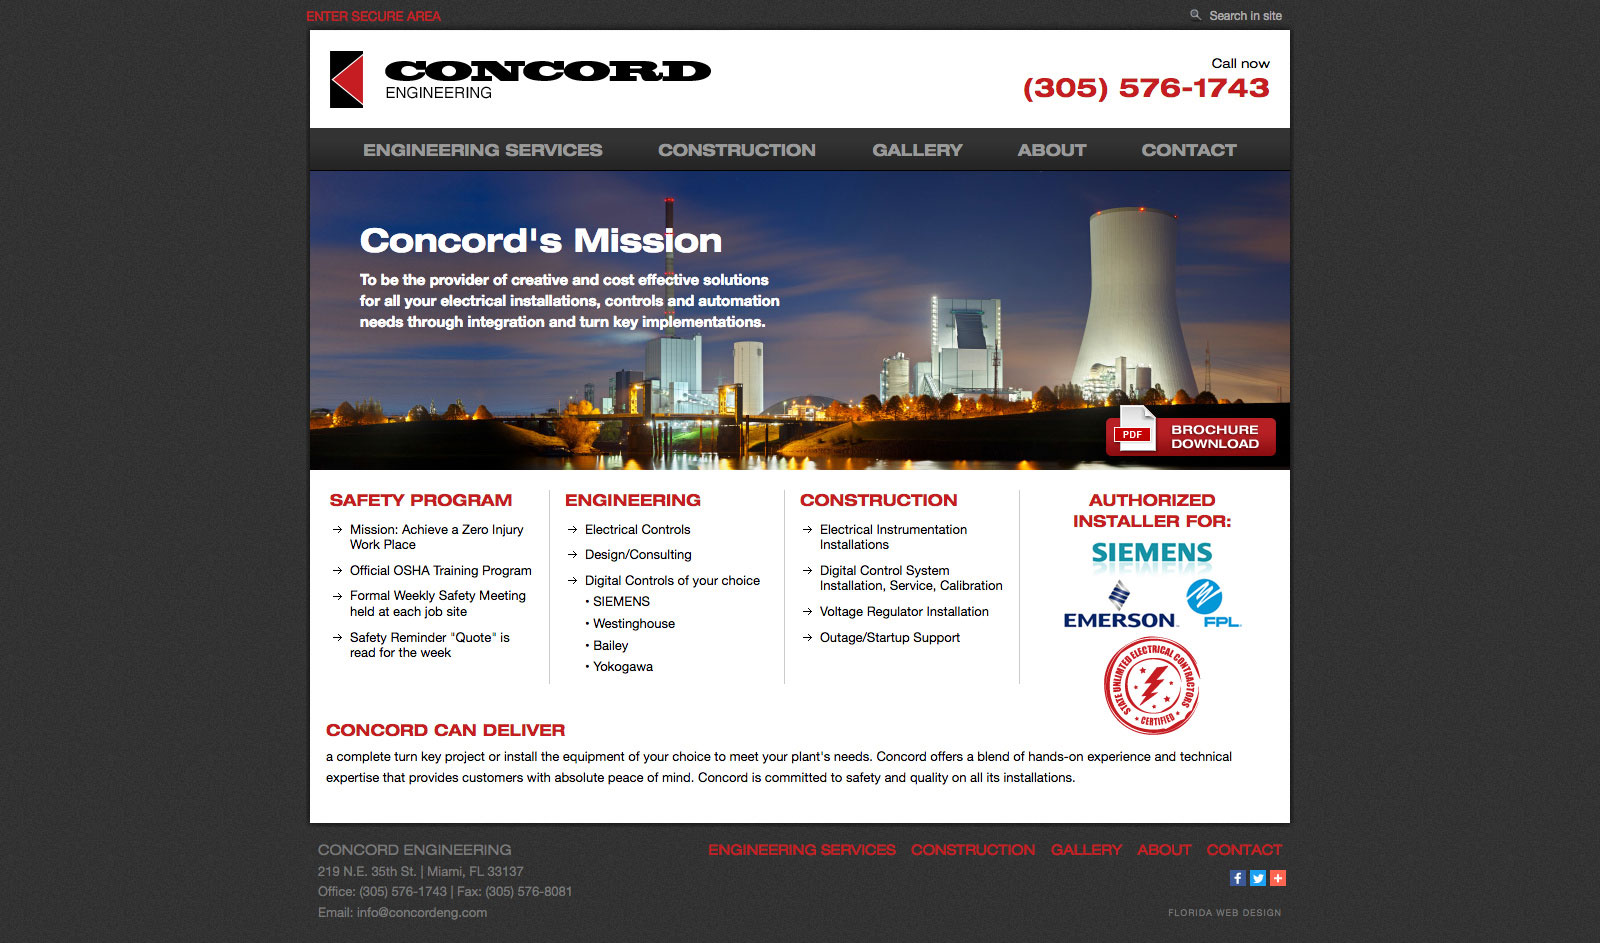 Concord Engineering - Miami, FL